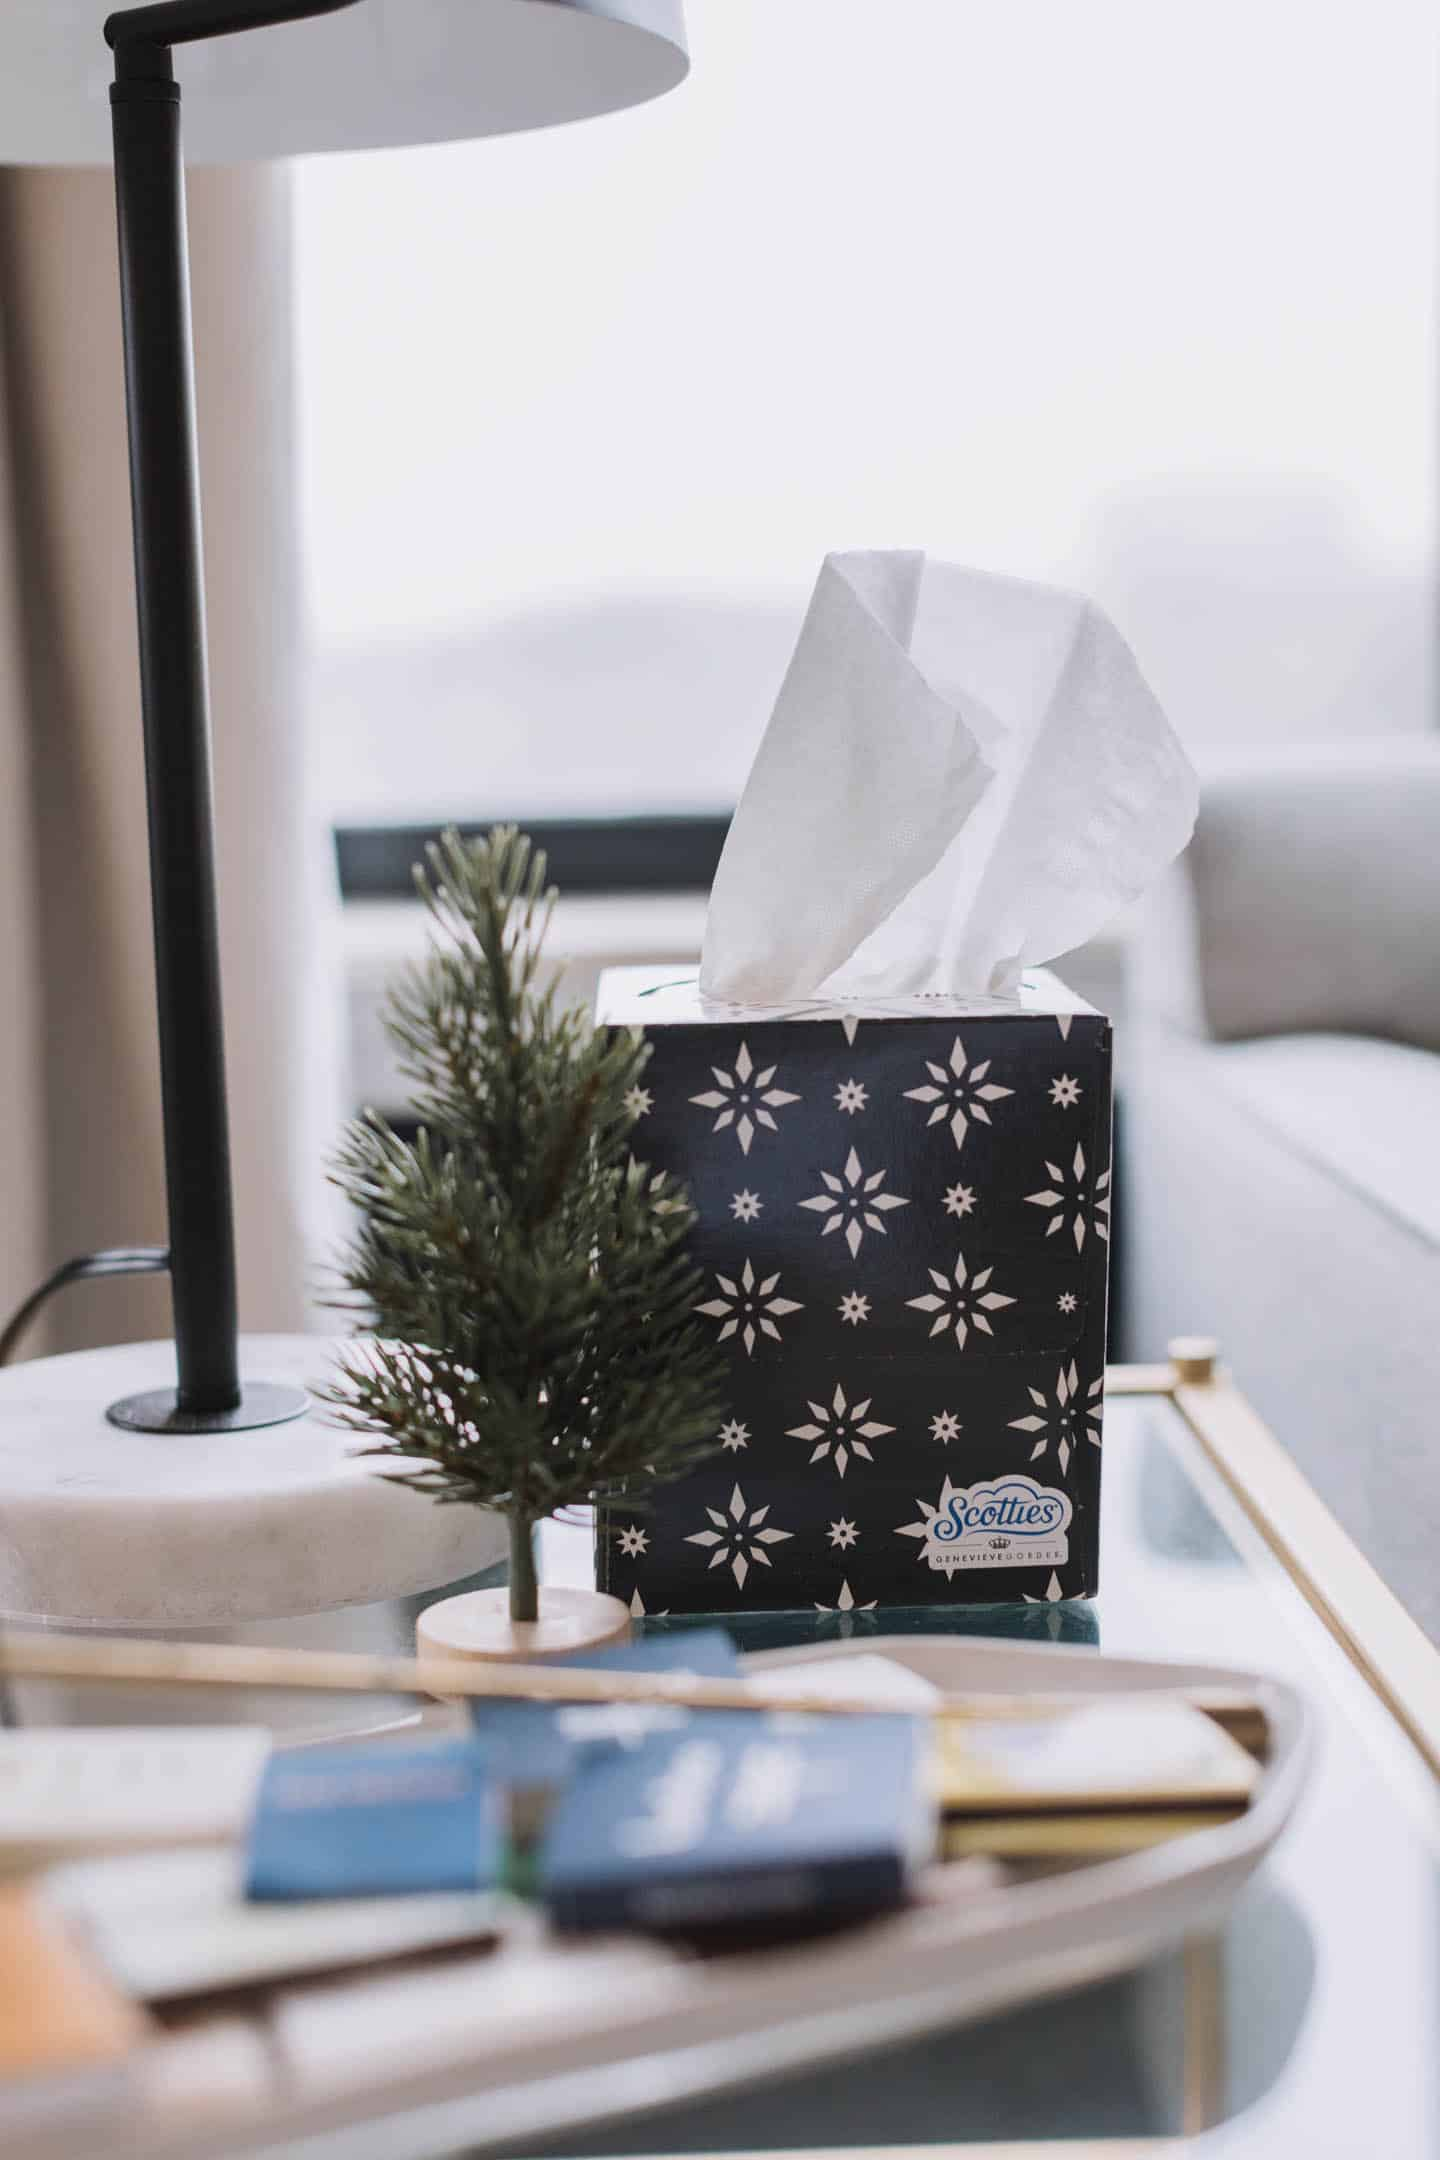 A Simple Way To Make Your Home More Festive